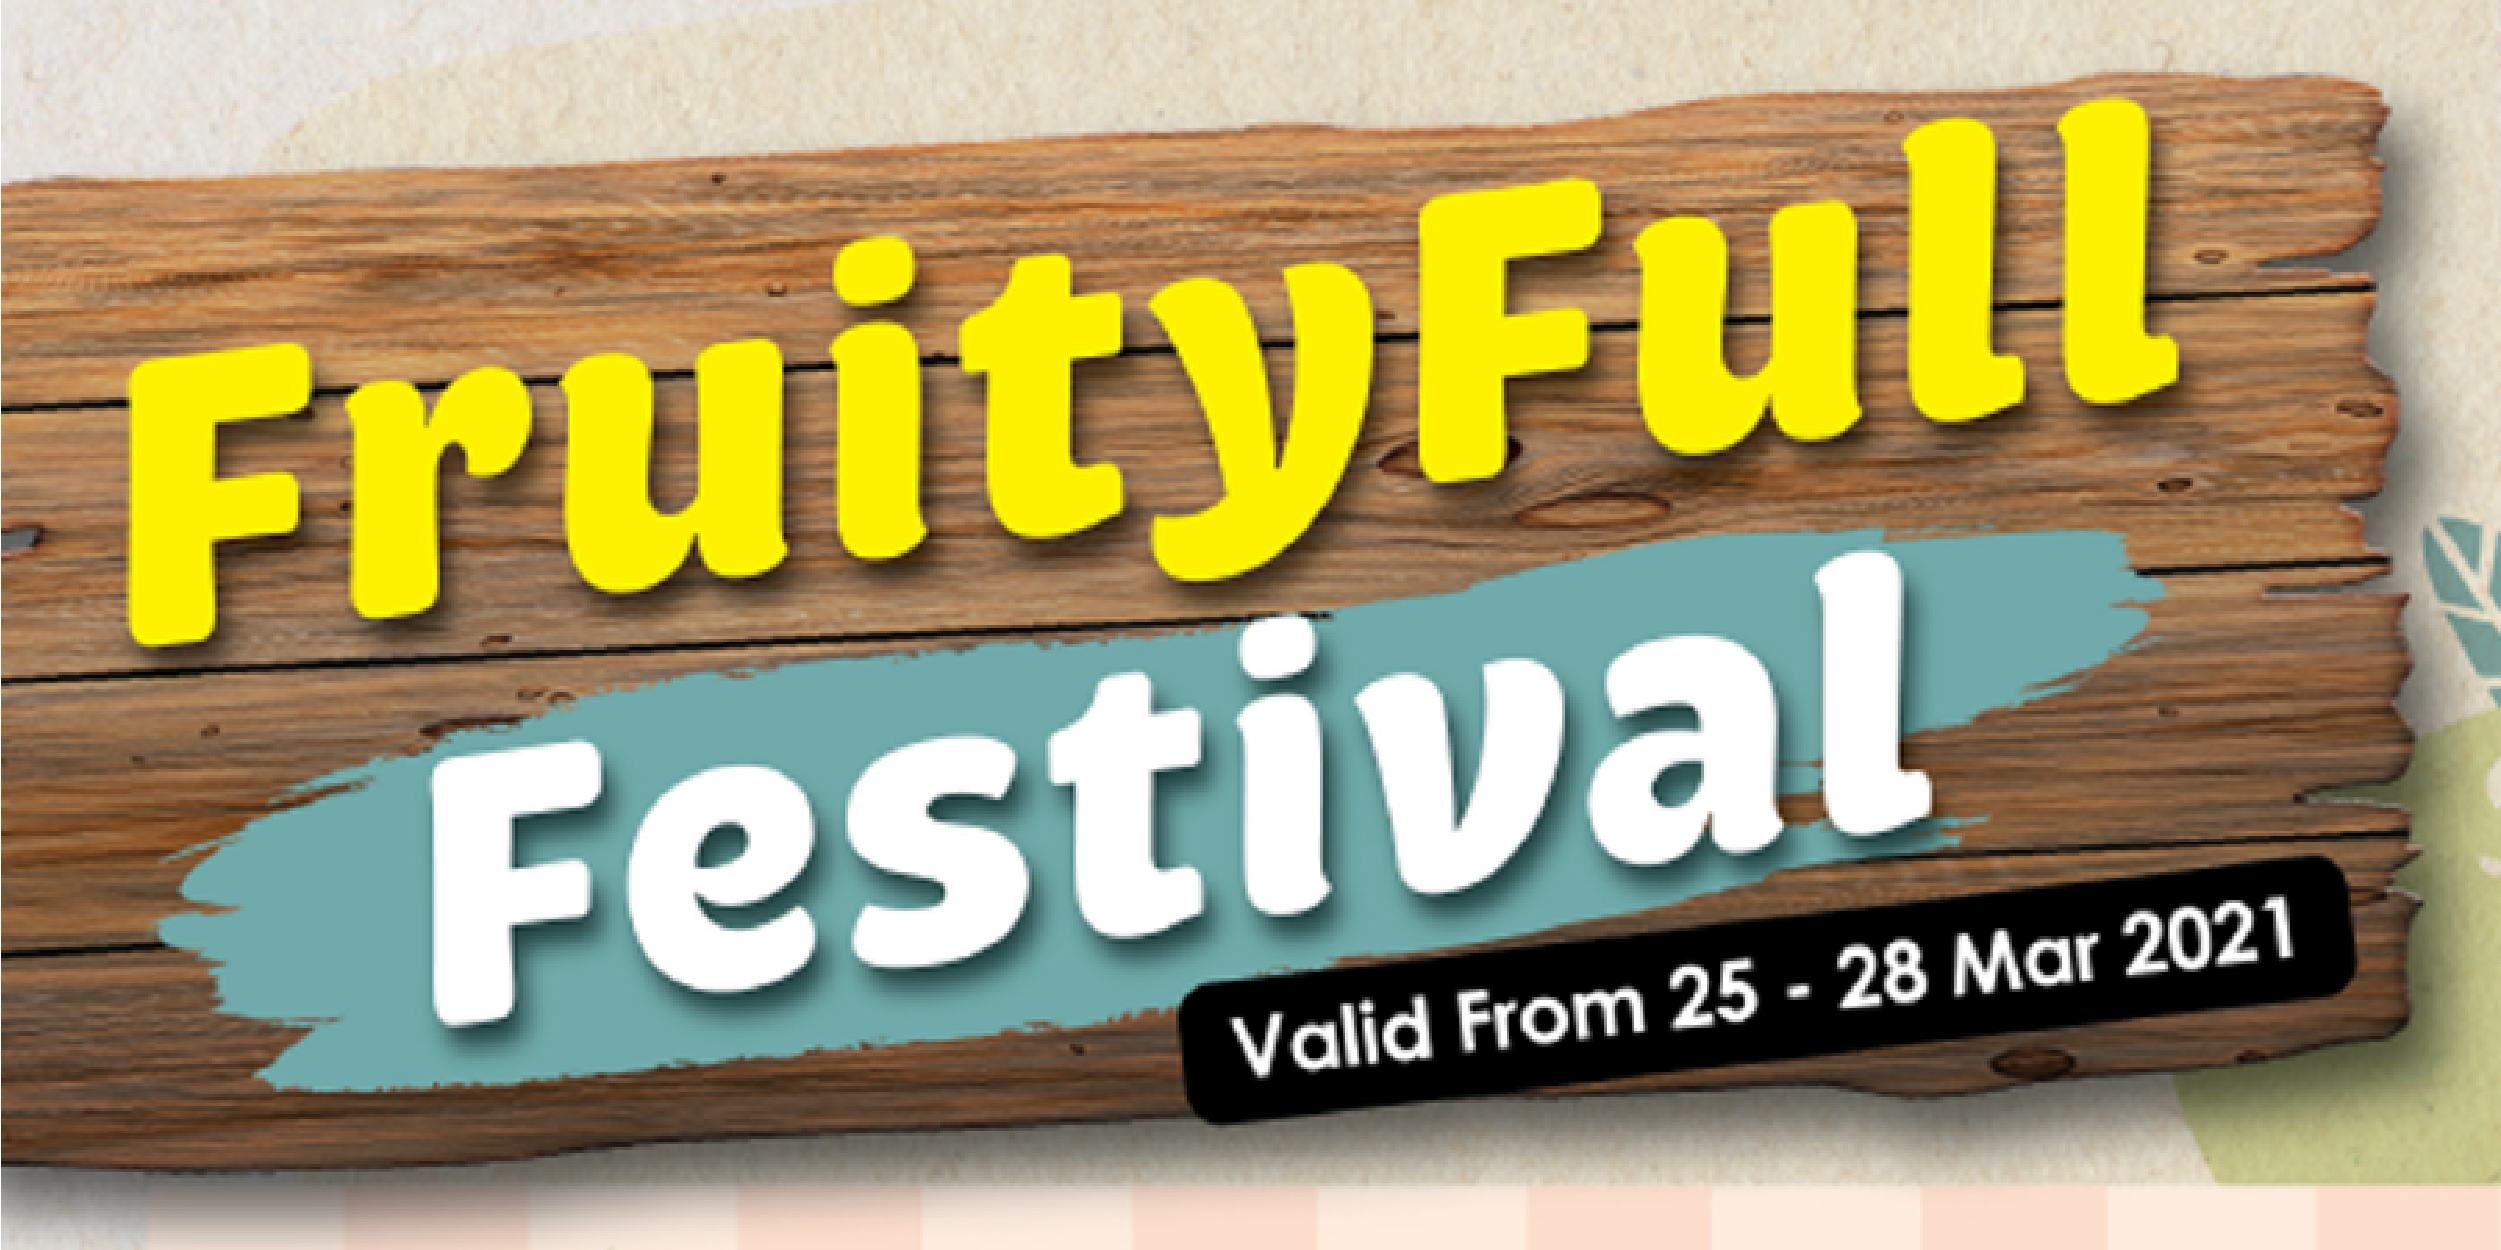 FruityFull Festival (Valid from 25 – 28 Mar 2021)